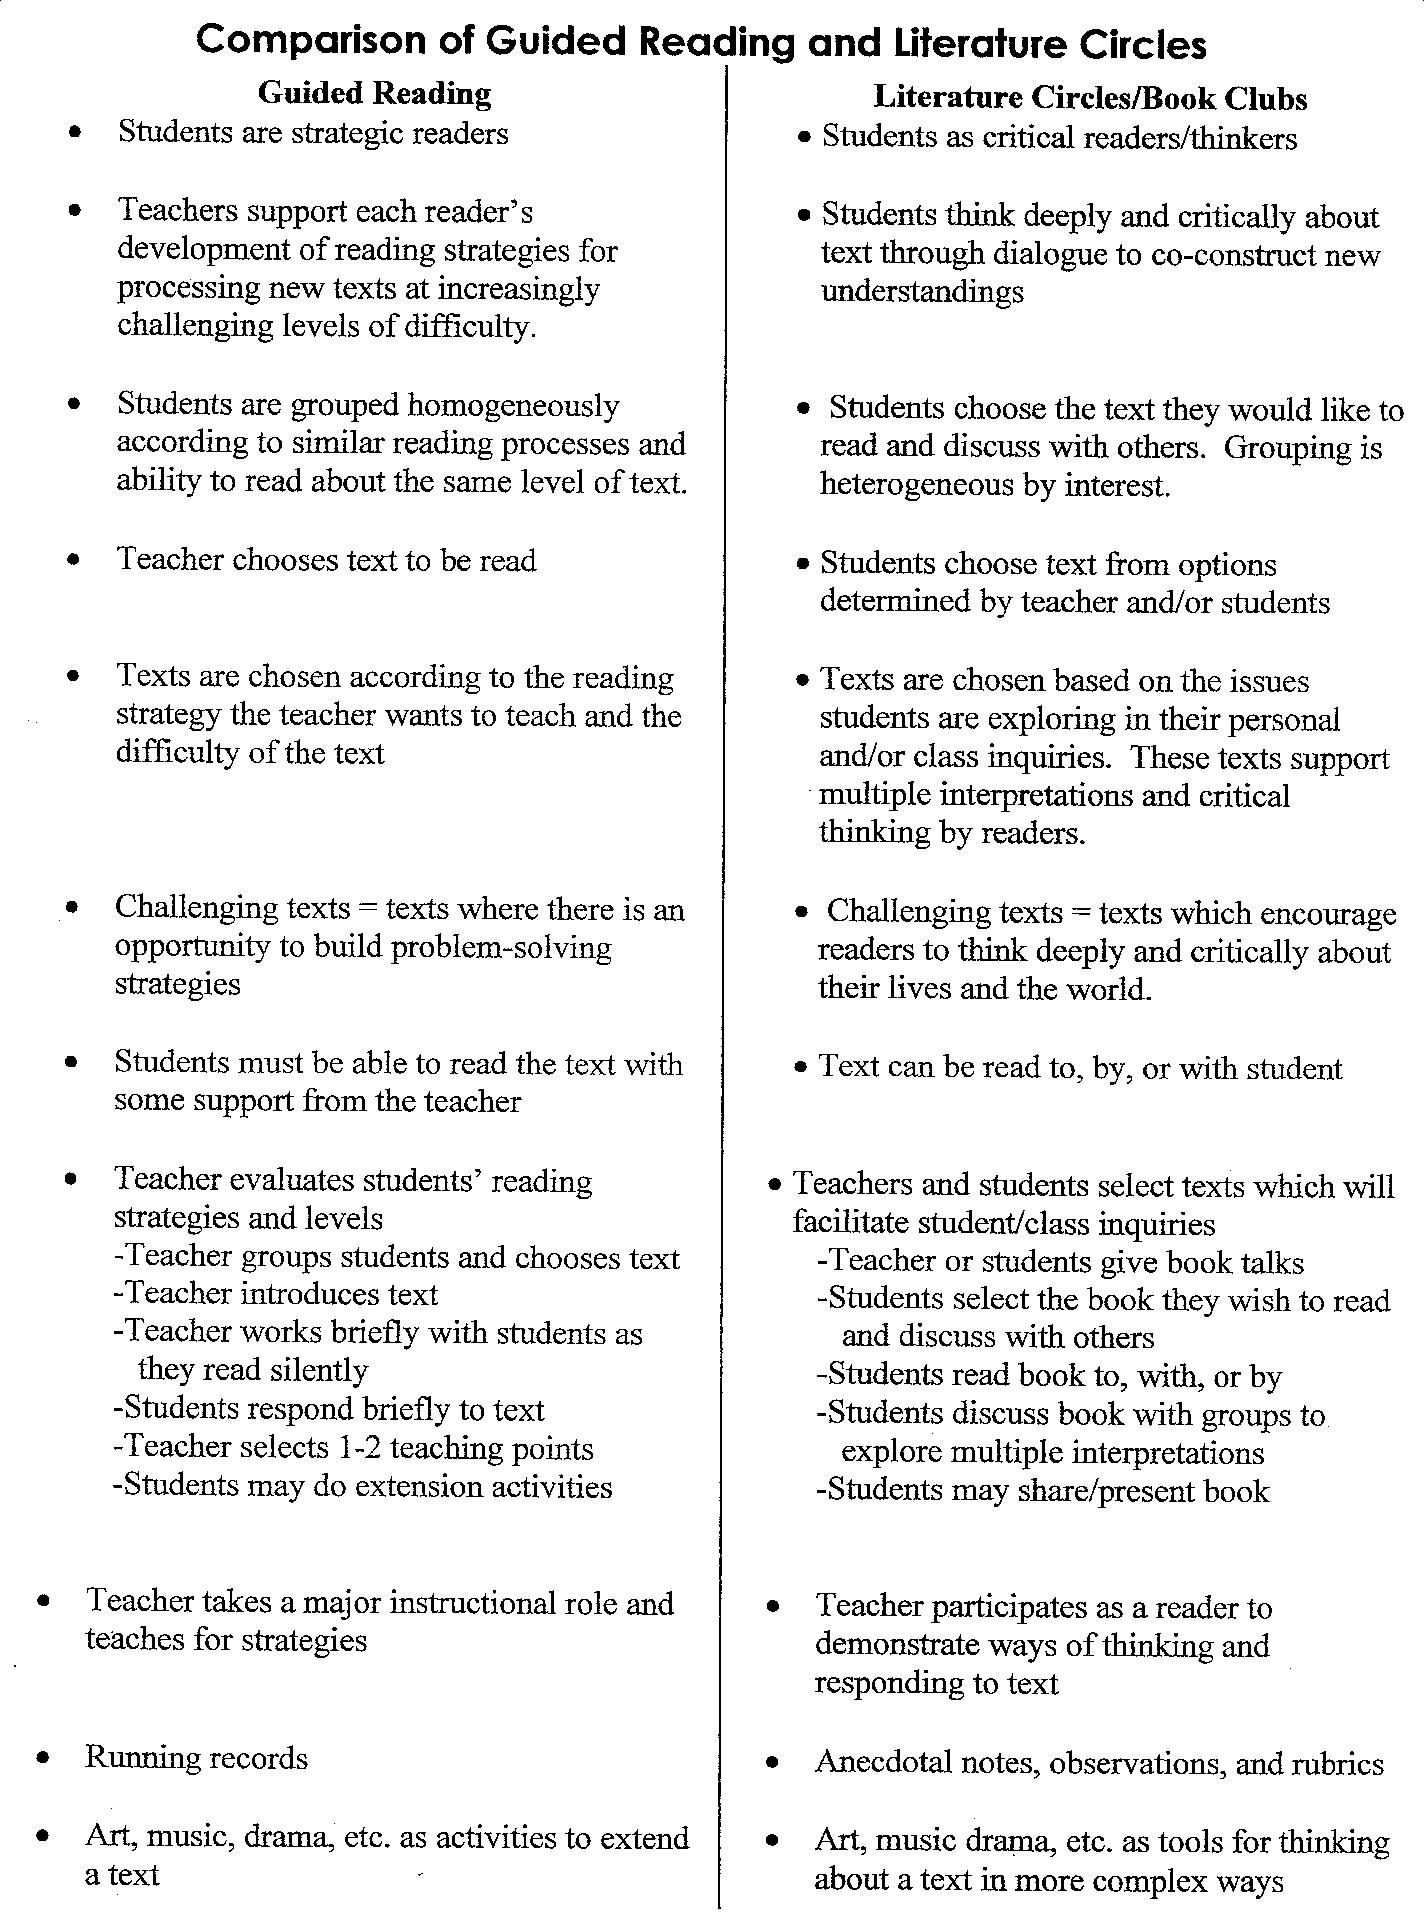 Pin By Jennifer Ching On Teaching Reading Writing